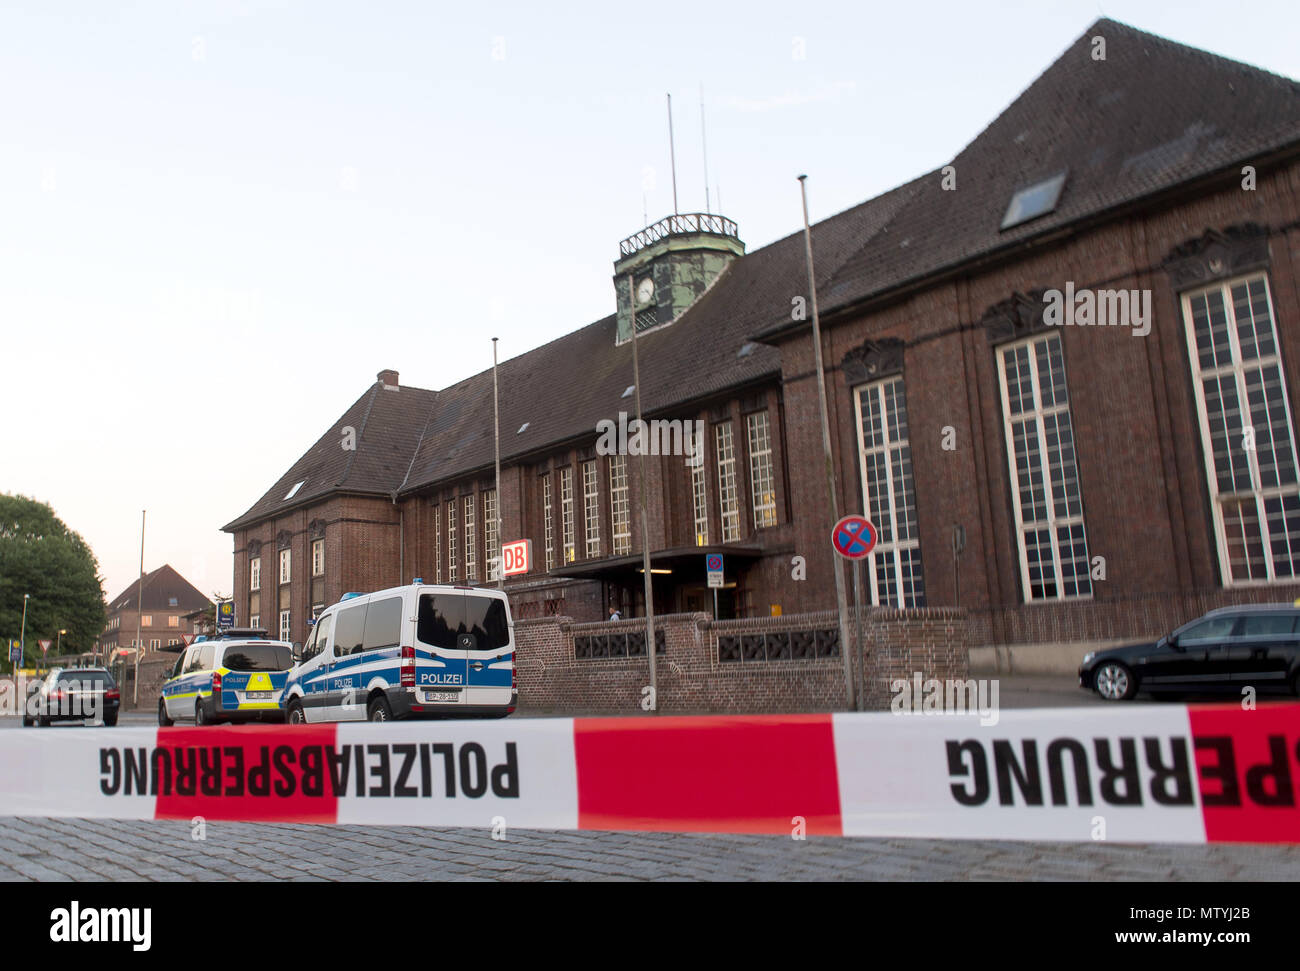 Blitzer In Kiel Flensburg Police Stock Photos Flensburg Police Stock Images Alamy